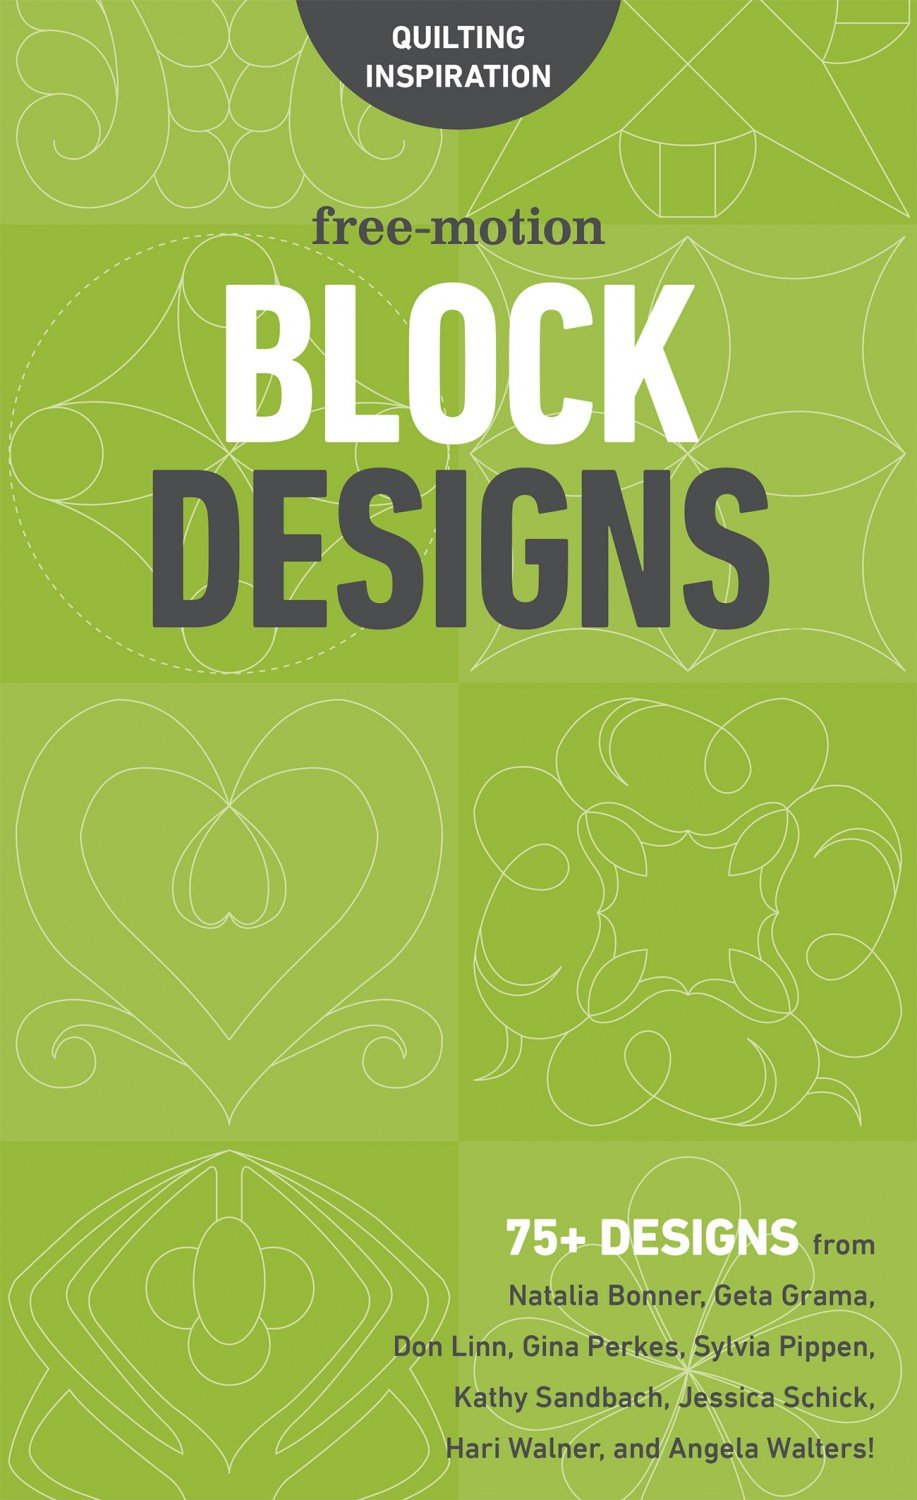 BK Free Motion Block Designs